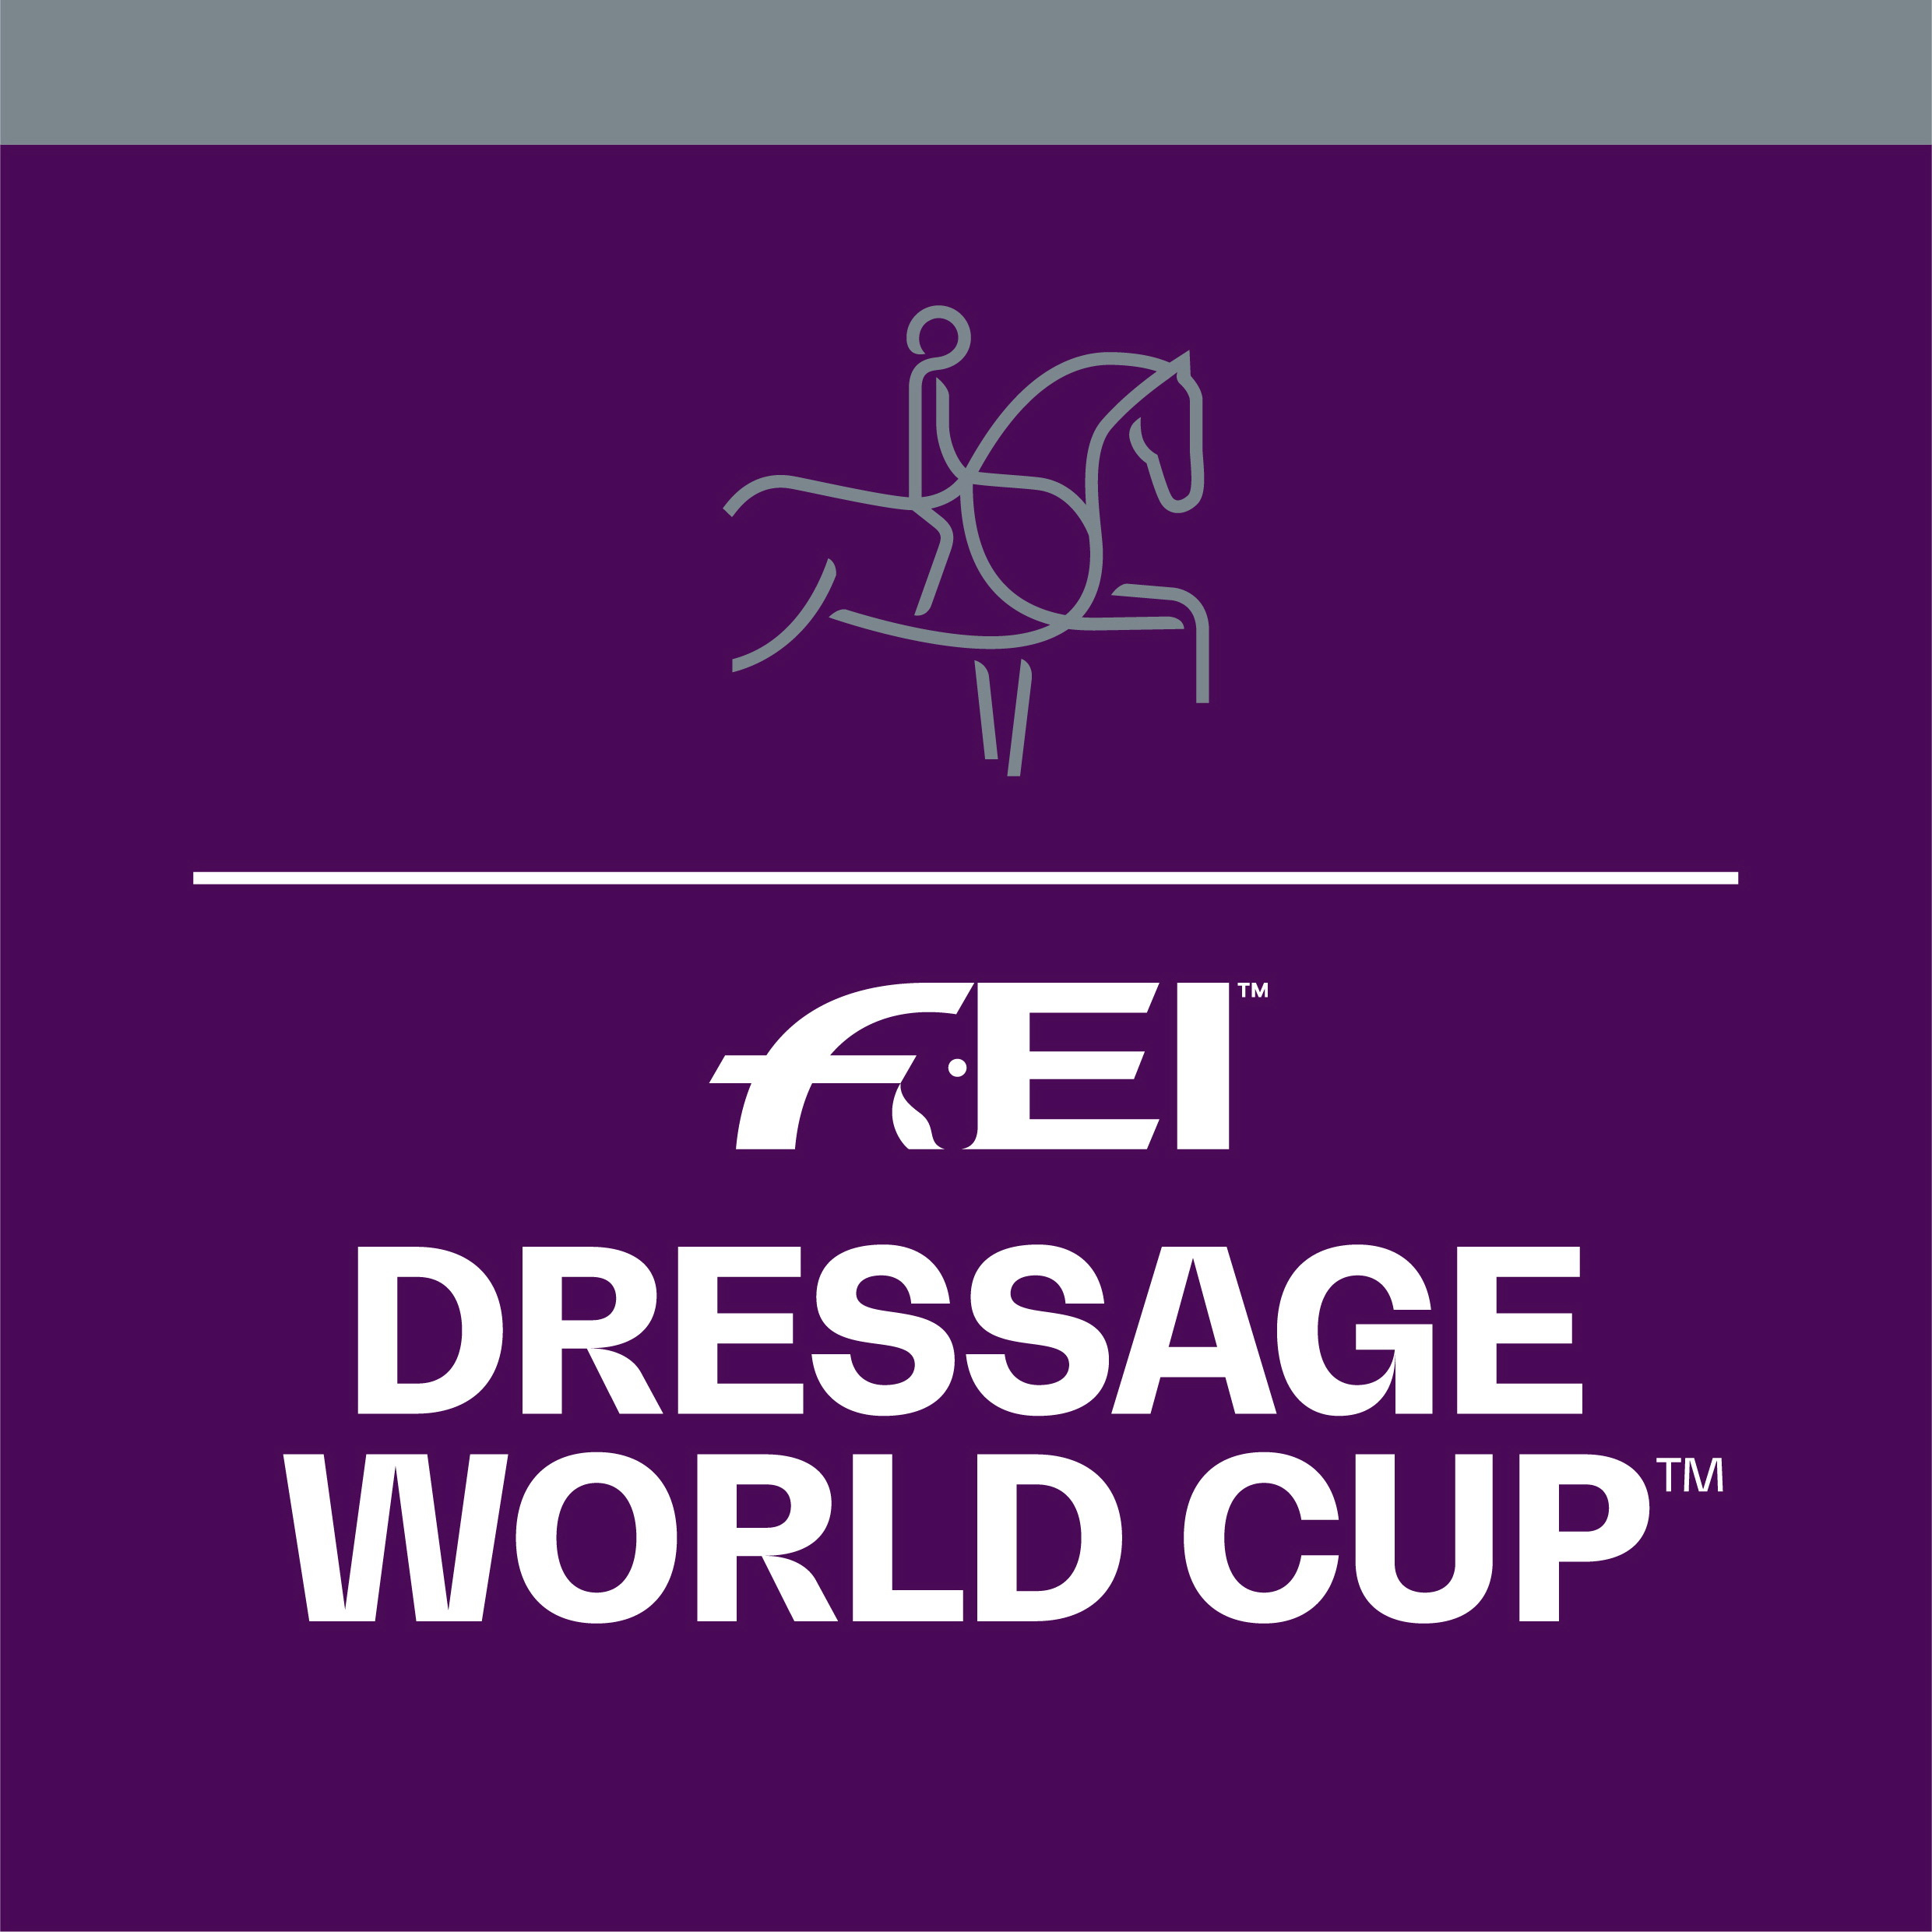 FEI dressage World Cup.jpg